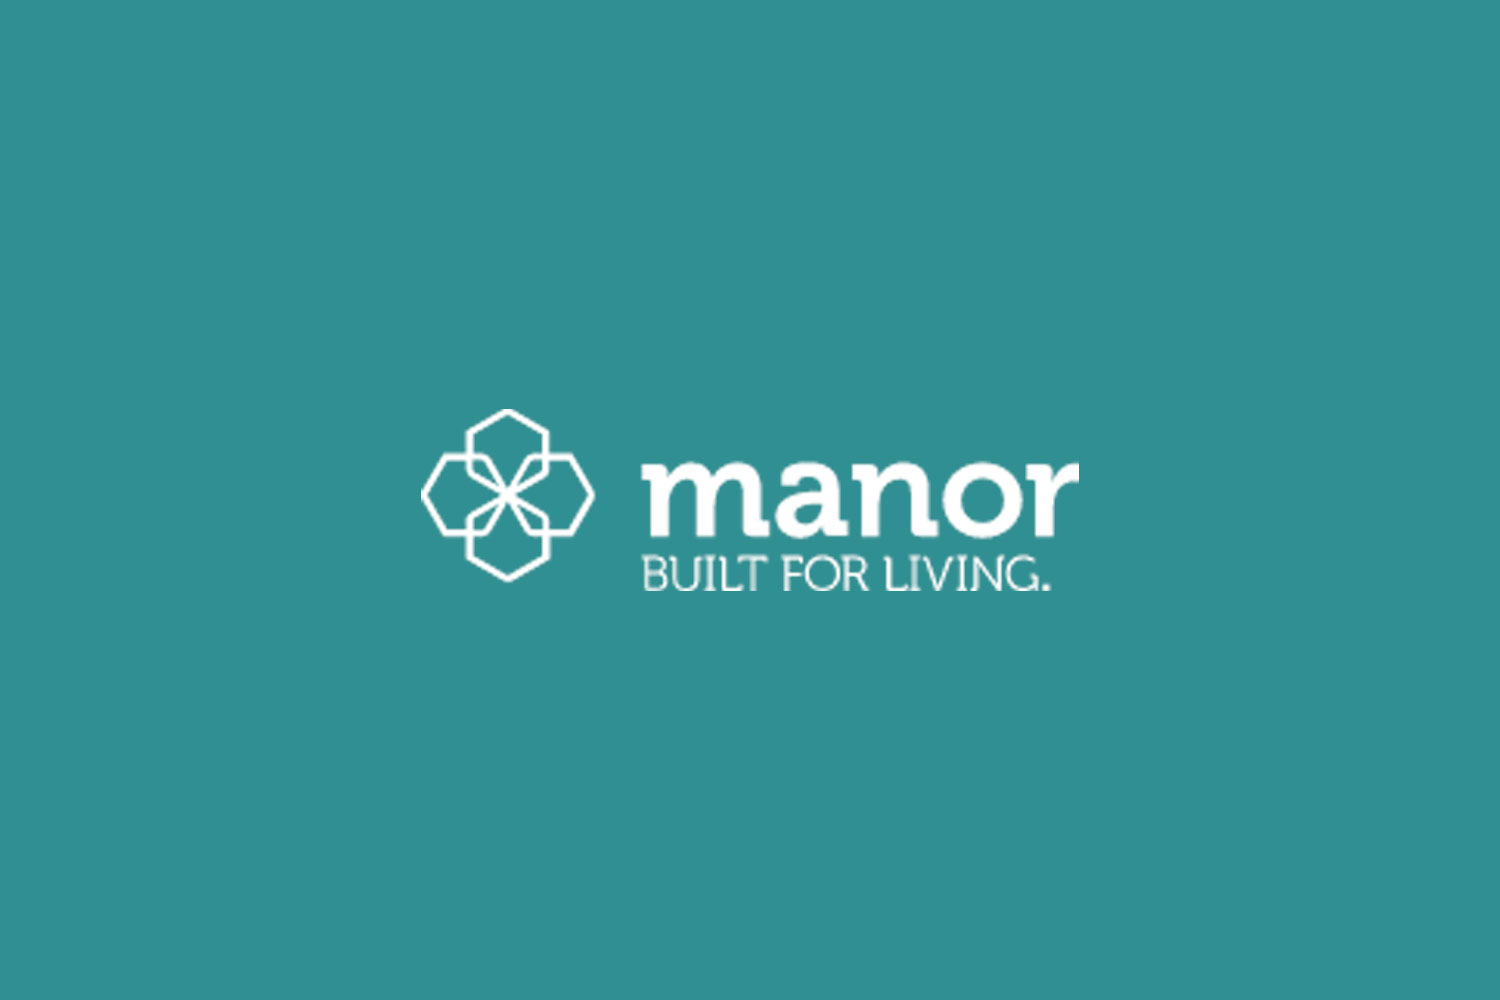 Manor Group NSW